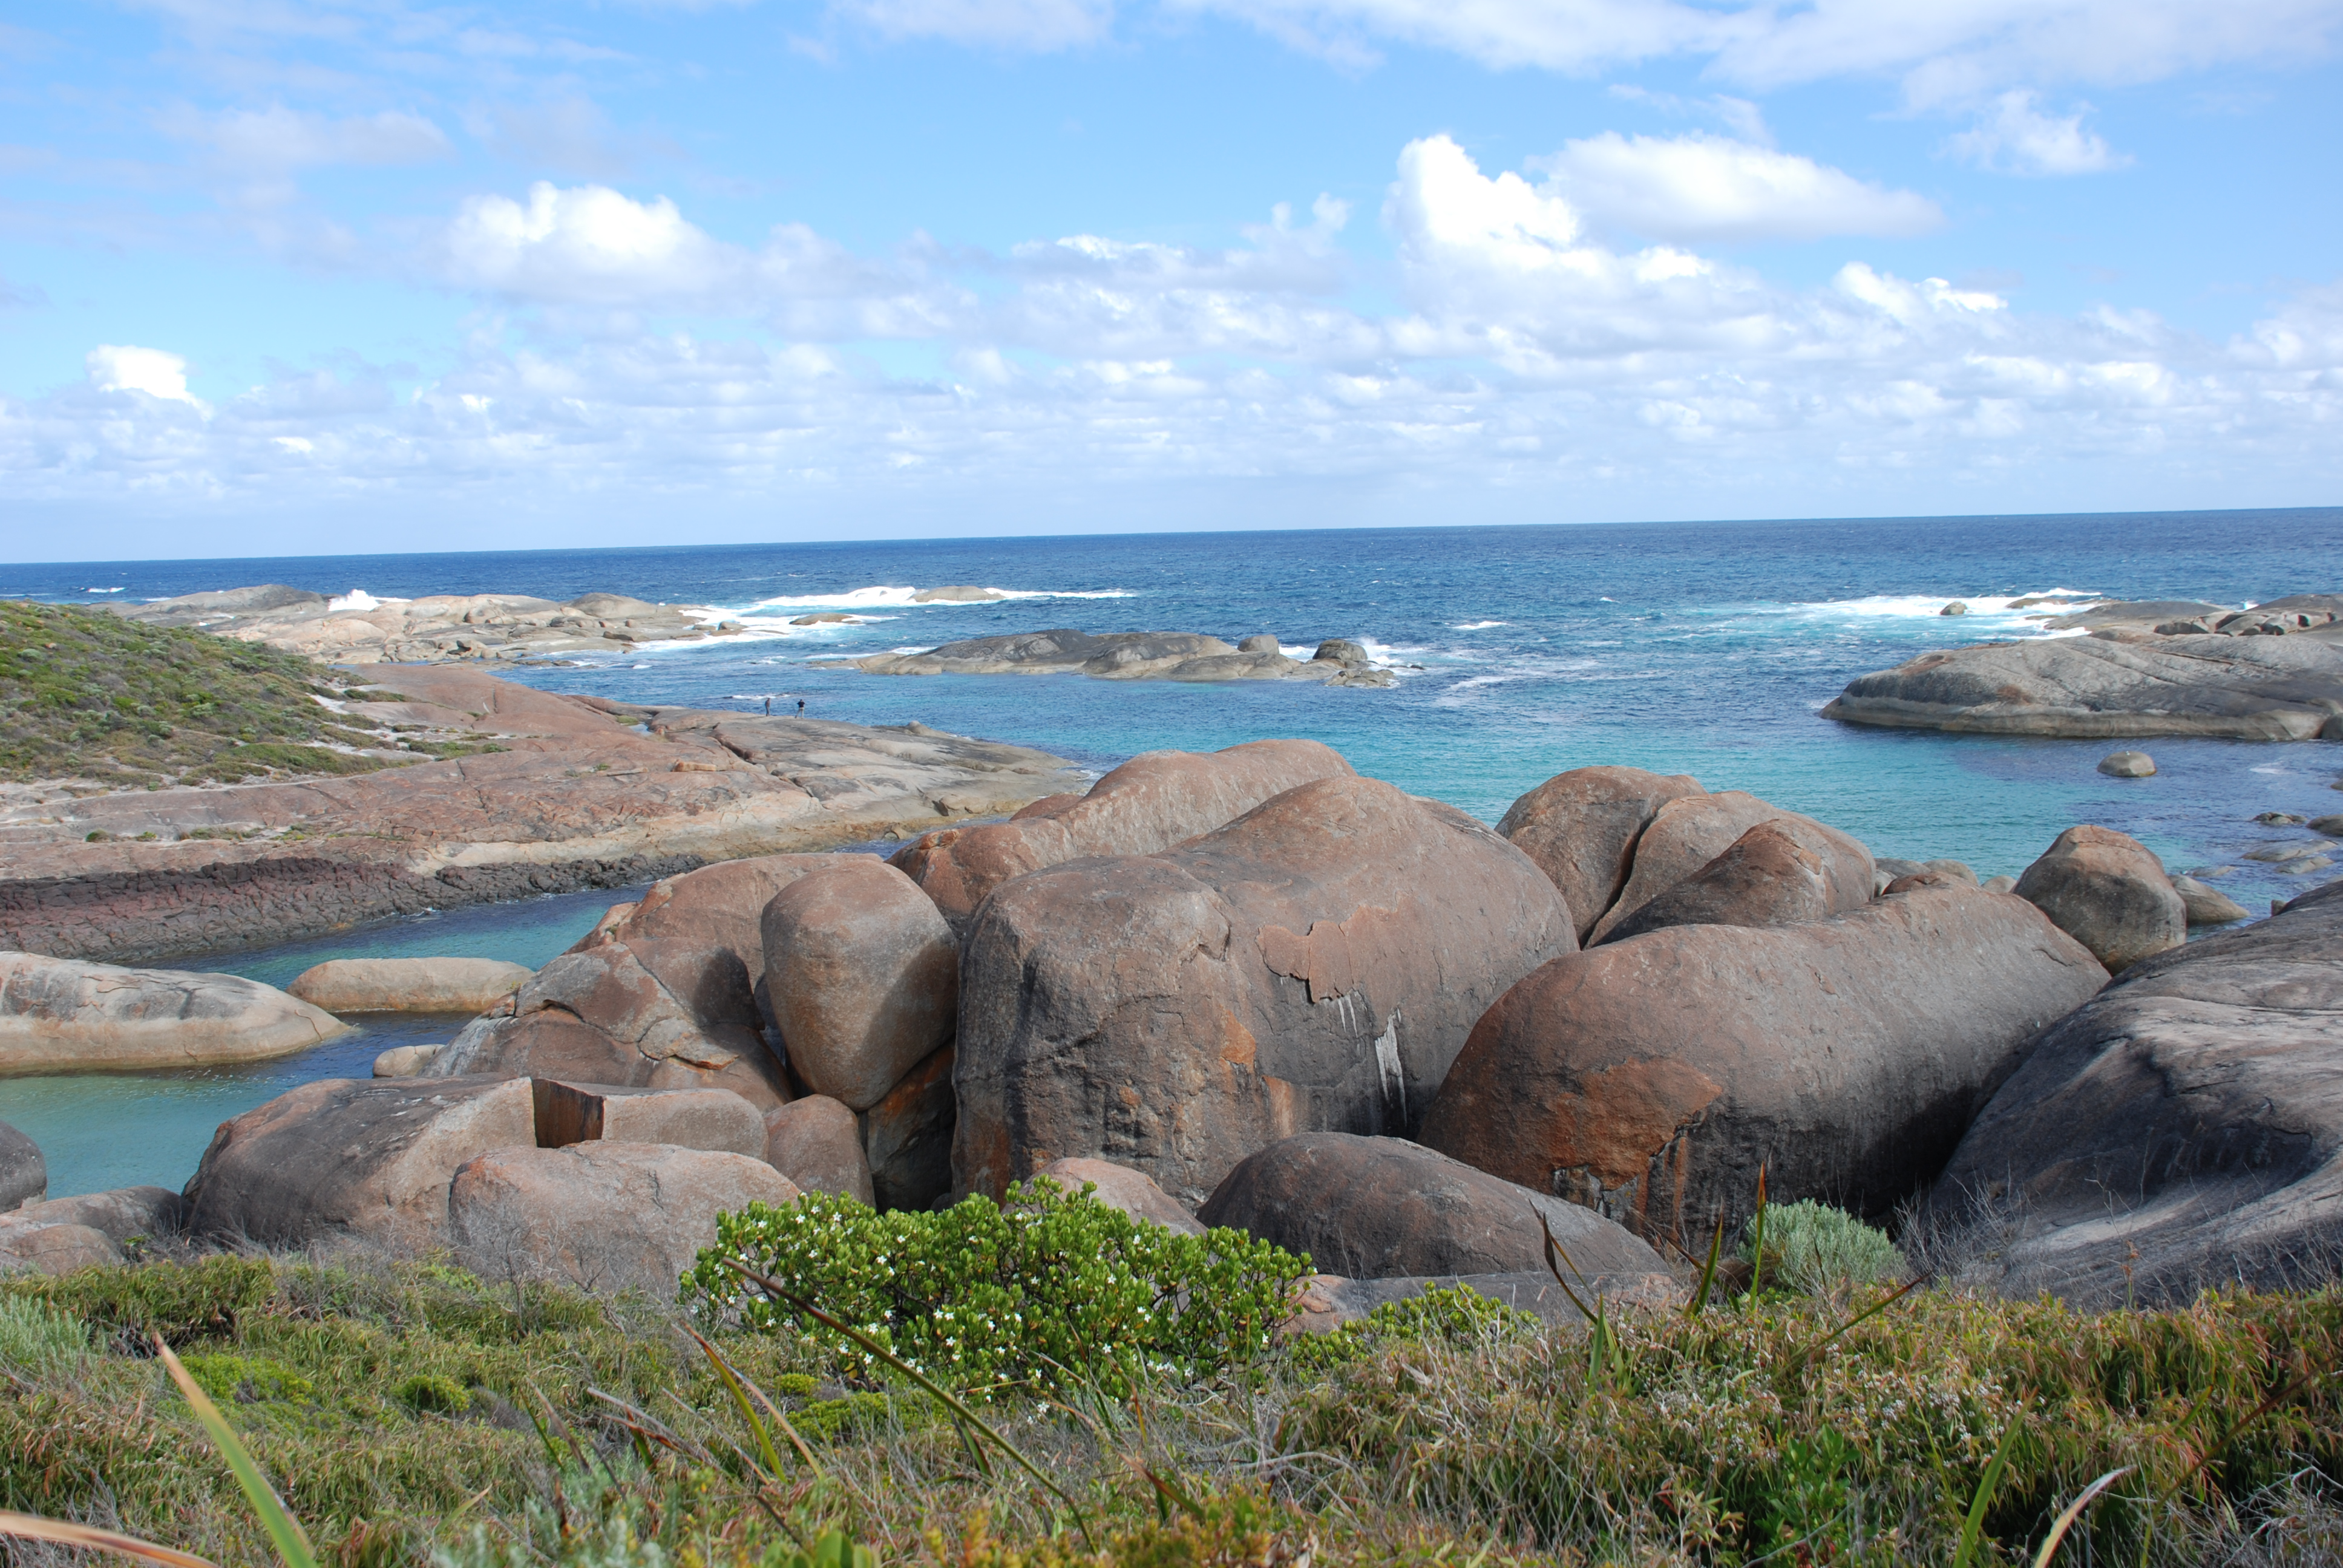 Sweetest Tank On Earth furthermore Starbucks Valentines Day Gift 2017 together with File Elephant Rocks   William Bay NP   Dec 2009 also Neil Armstrong together with 360Degree VirtualTour. on national earth day